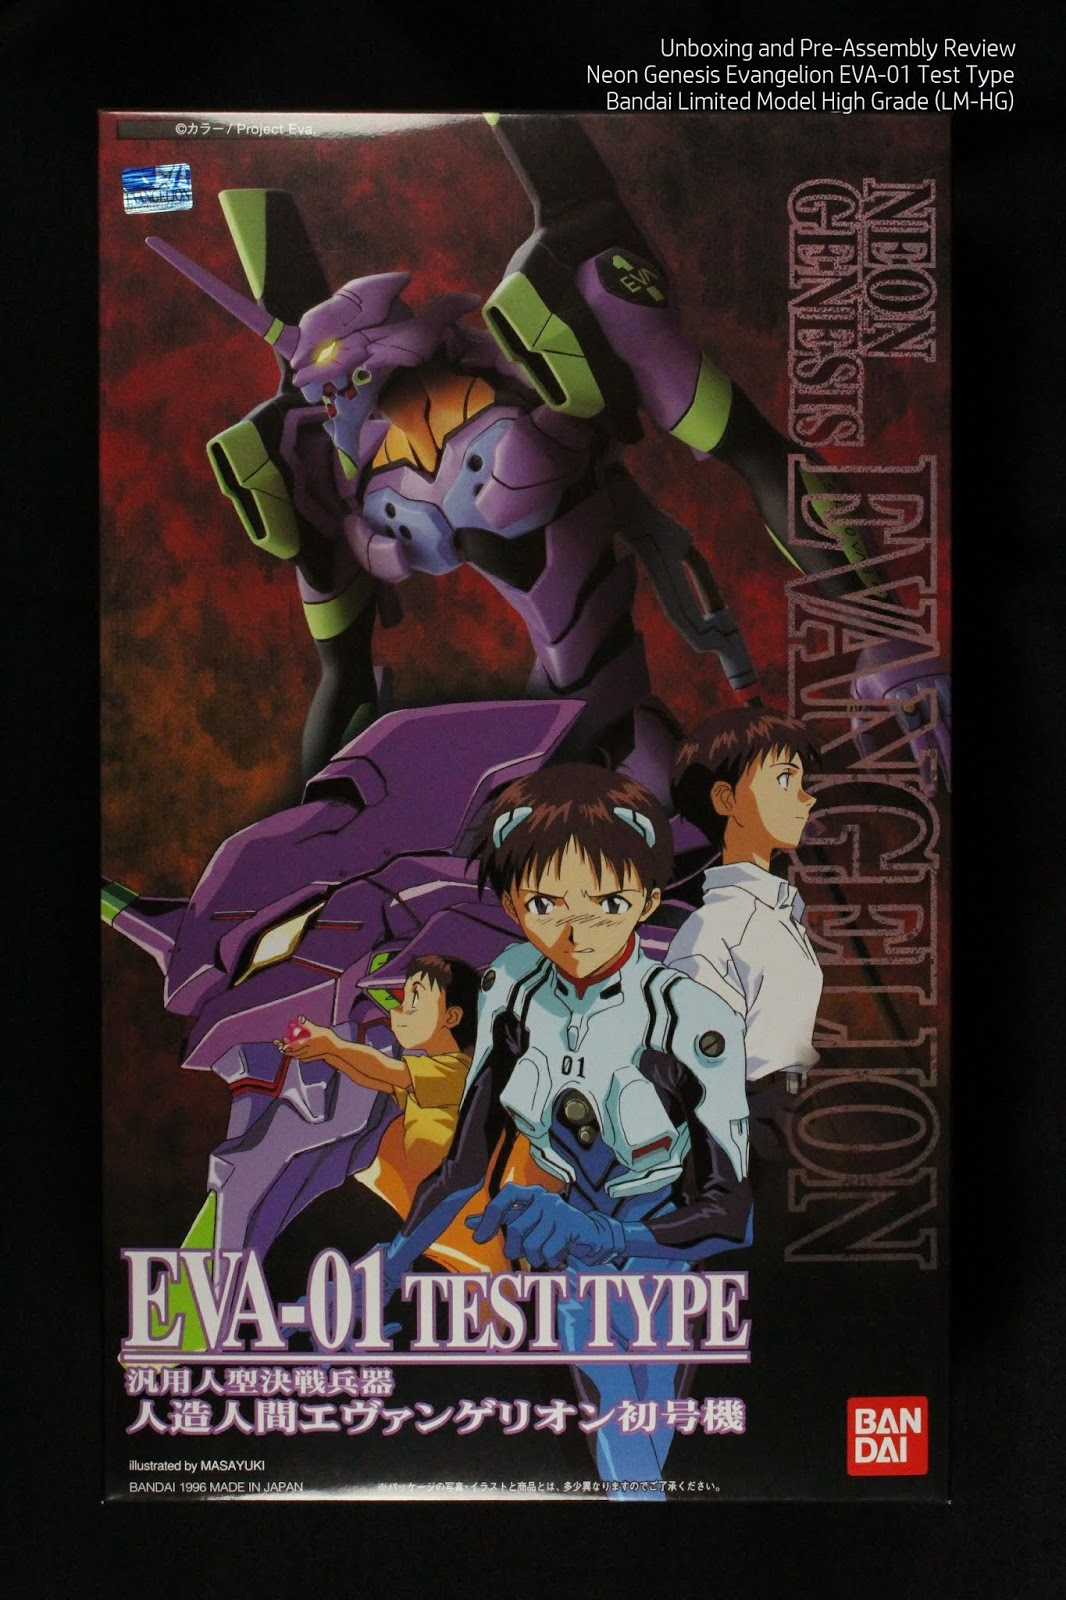 Art And Musings Of A Miniature Hobbyist Bandai Lm Hg Neon Genesis Evangelion Eva 01 Test Type Unboxing And Pre Assembly Review